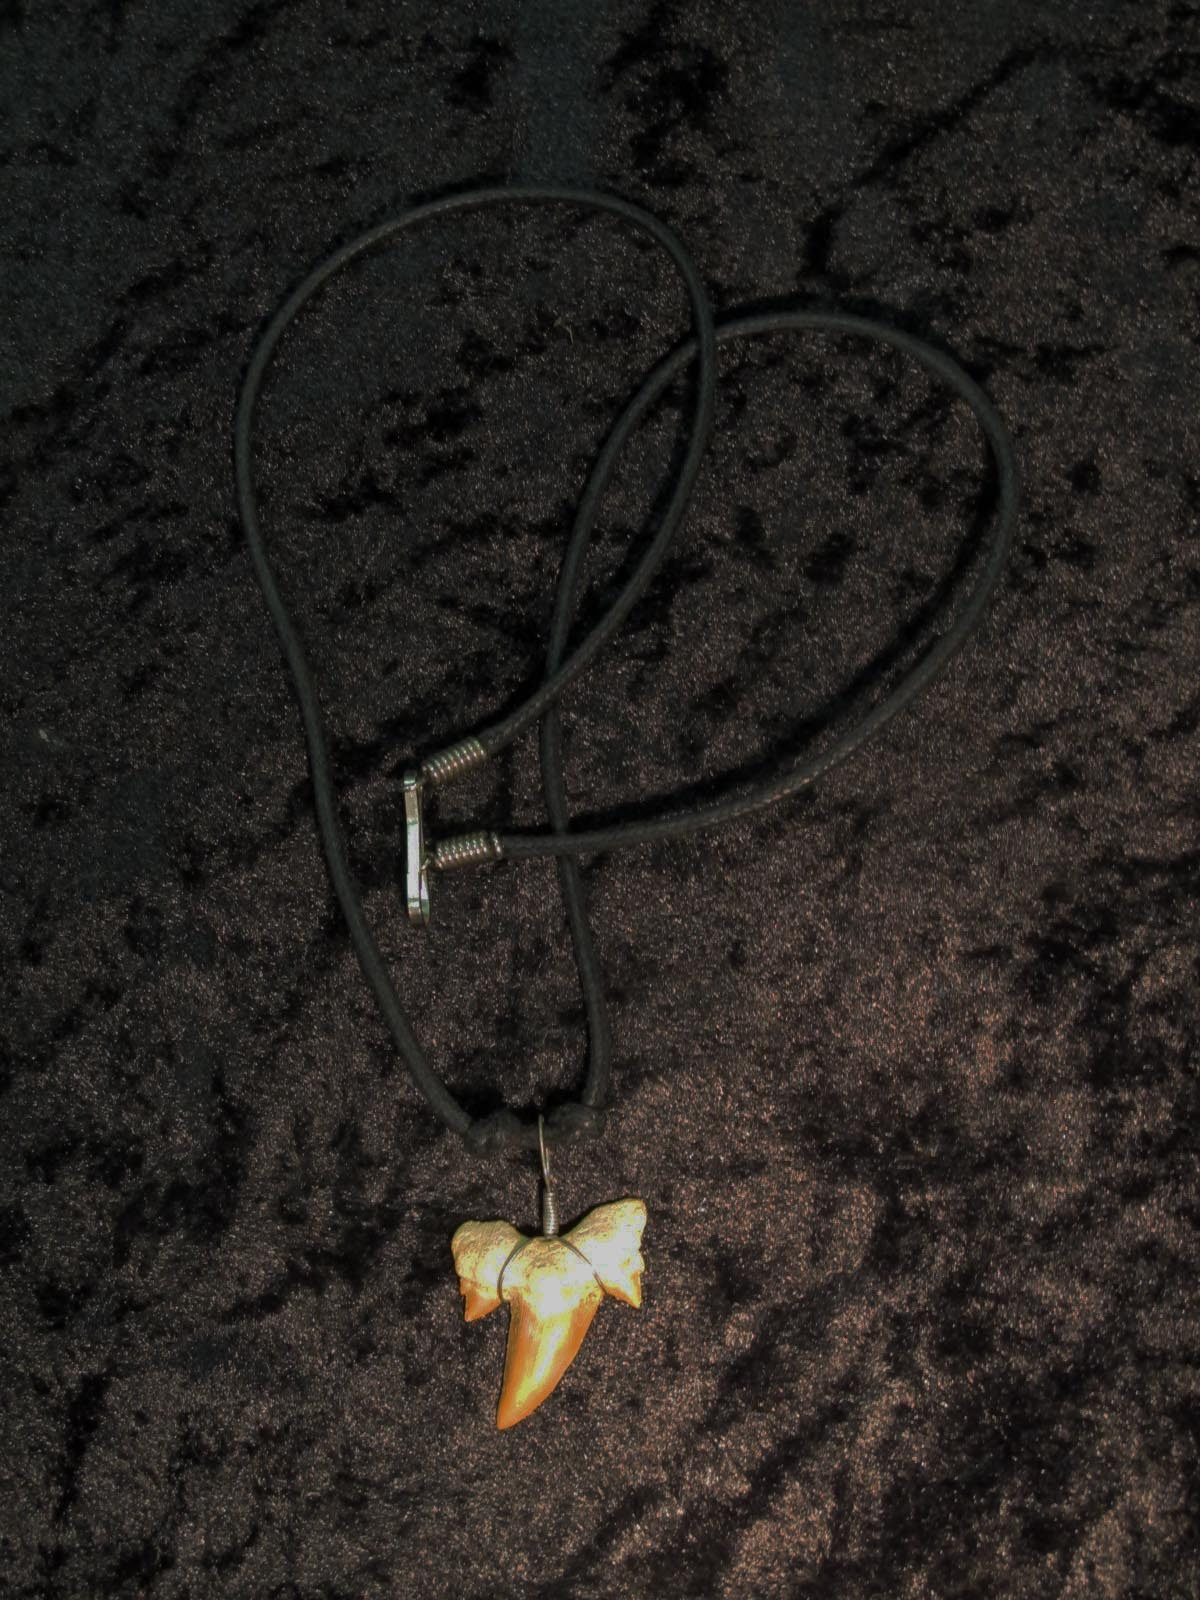 Wearing crystals: shark tooth necklace